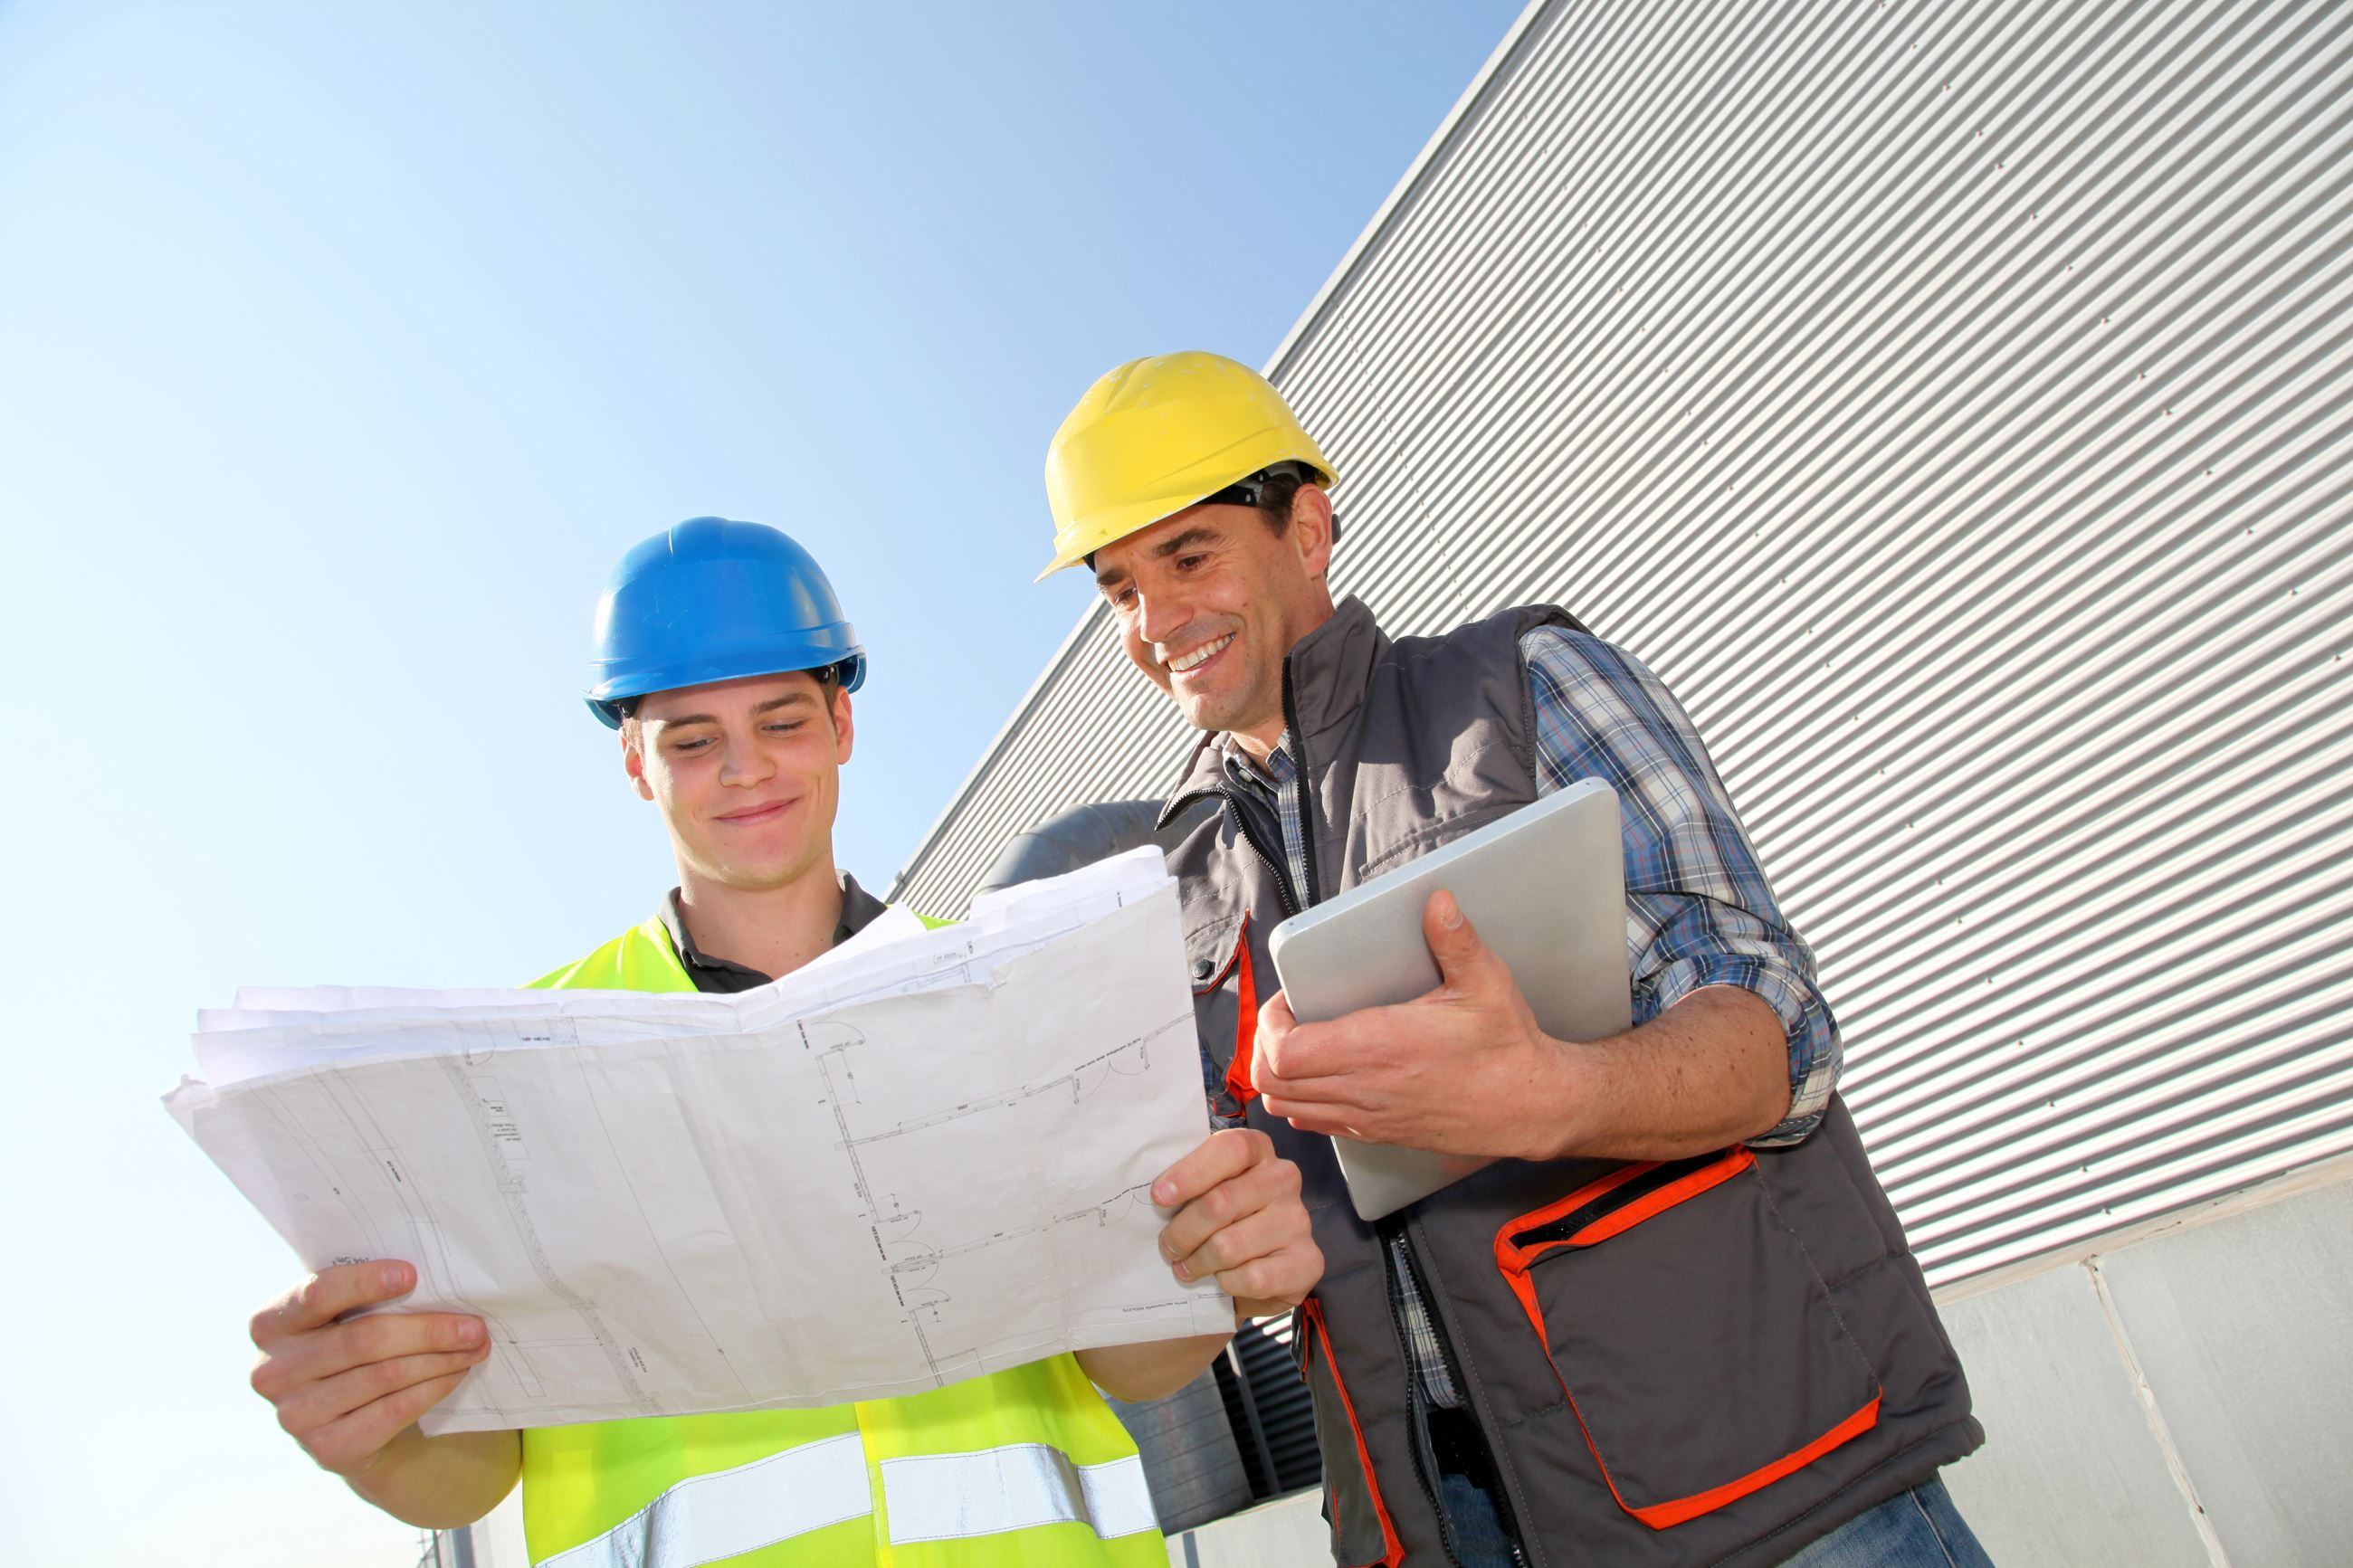 Internship Program 2 workers with hard hats consulting